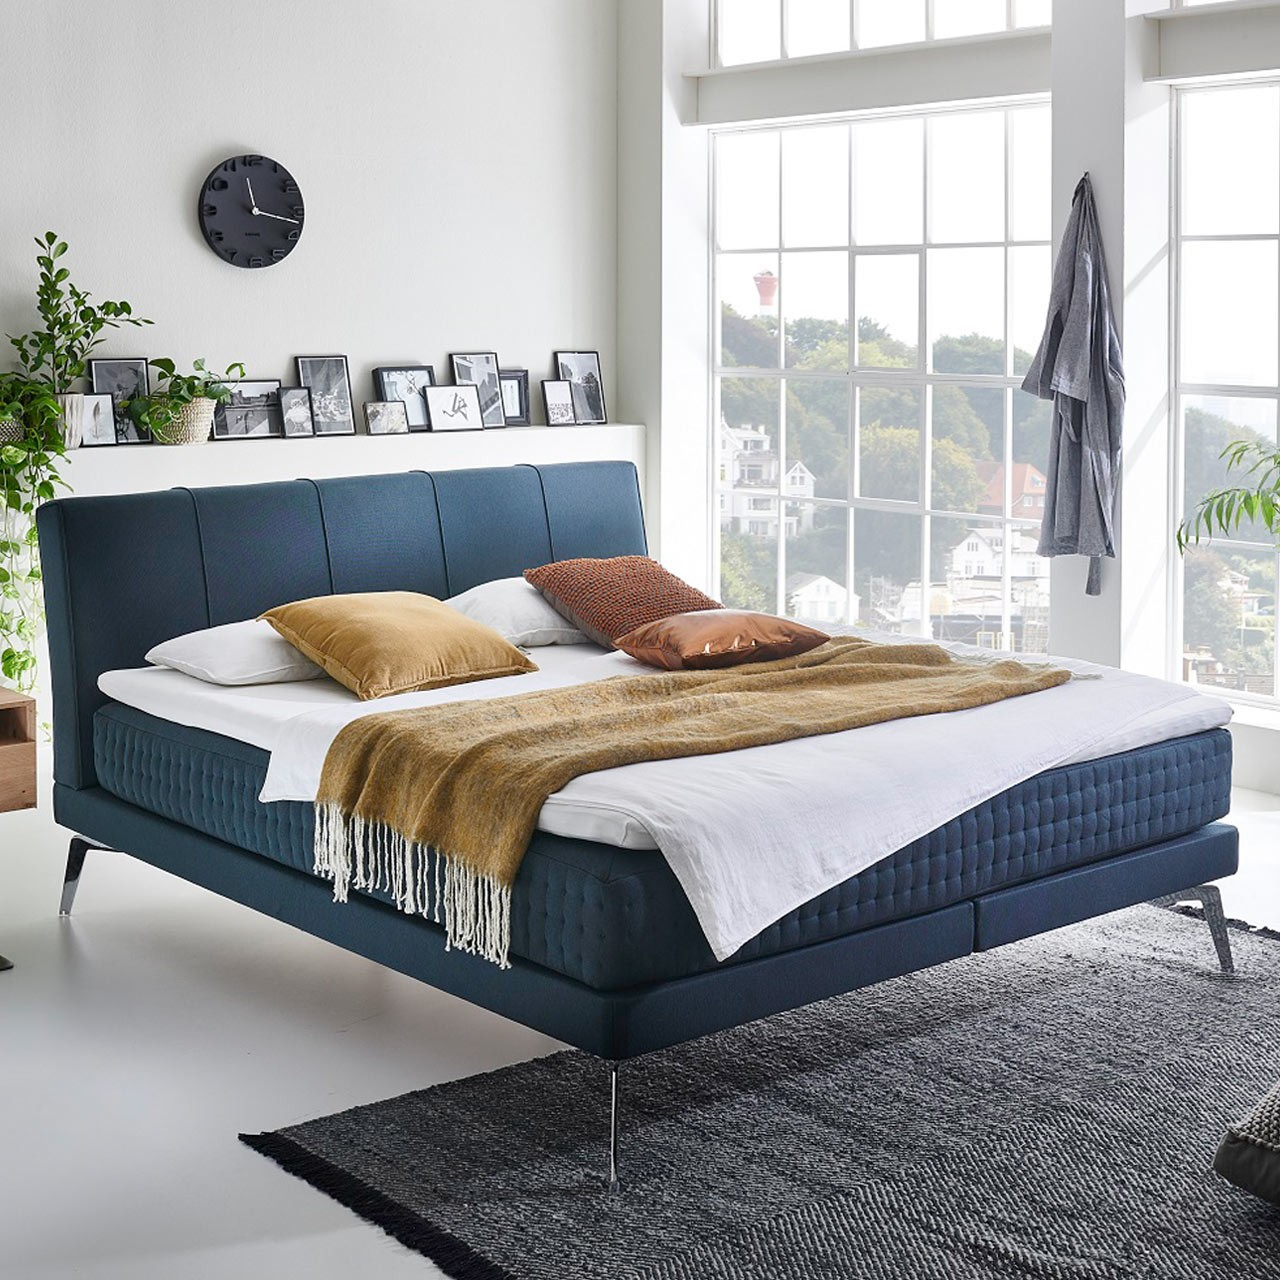 Minimum Collection Boxspringbett Nightflight Mantra Petrol 160x200 H2 ohne Topper Vertikalsteppung